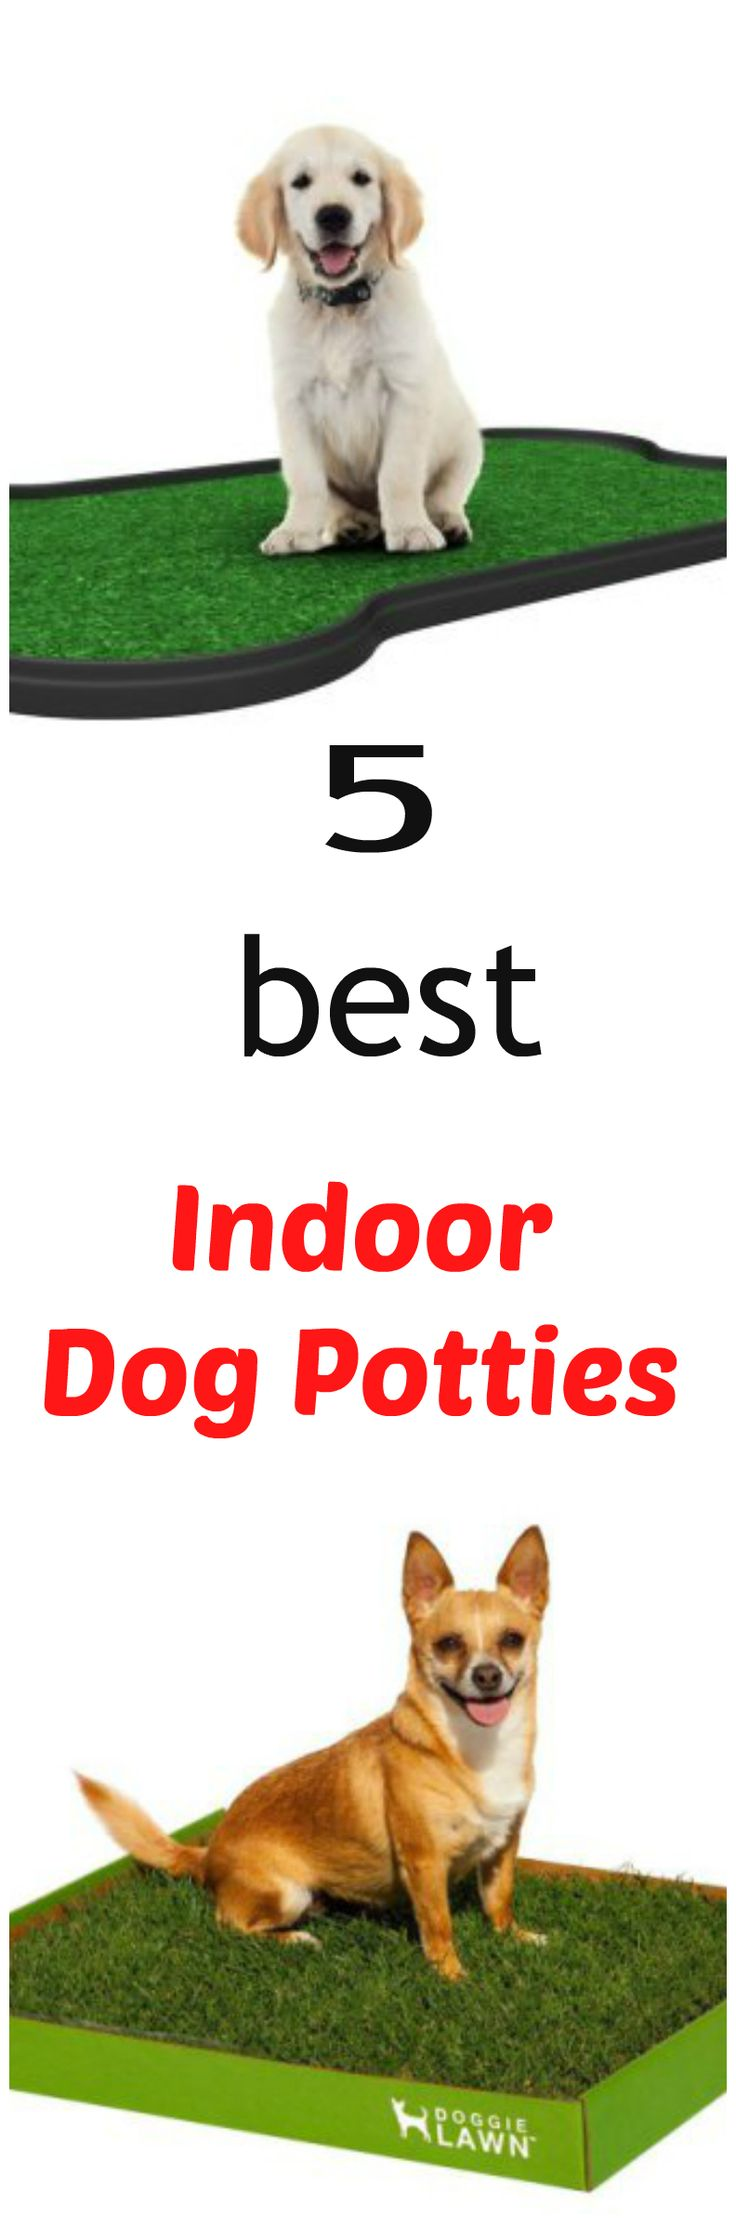 Dog potties are a good option for all pet owners, but especially for those who are really busy, have unpredictable schedules or live in places that are too hot, cold or rainy. There are lots of dog potty systems available. But after doing a ton of research, I think these five dog potties are five of the best indoor dog potties available in the market today and the ones I recommend you try first... see more at PetsLady.com ... The FUN site for Animal Lovers